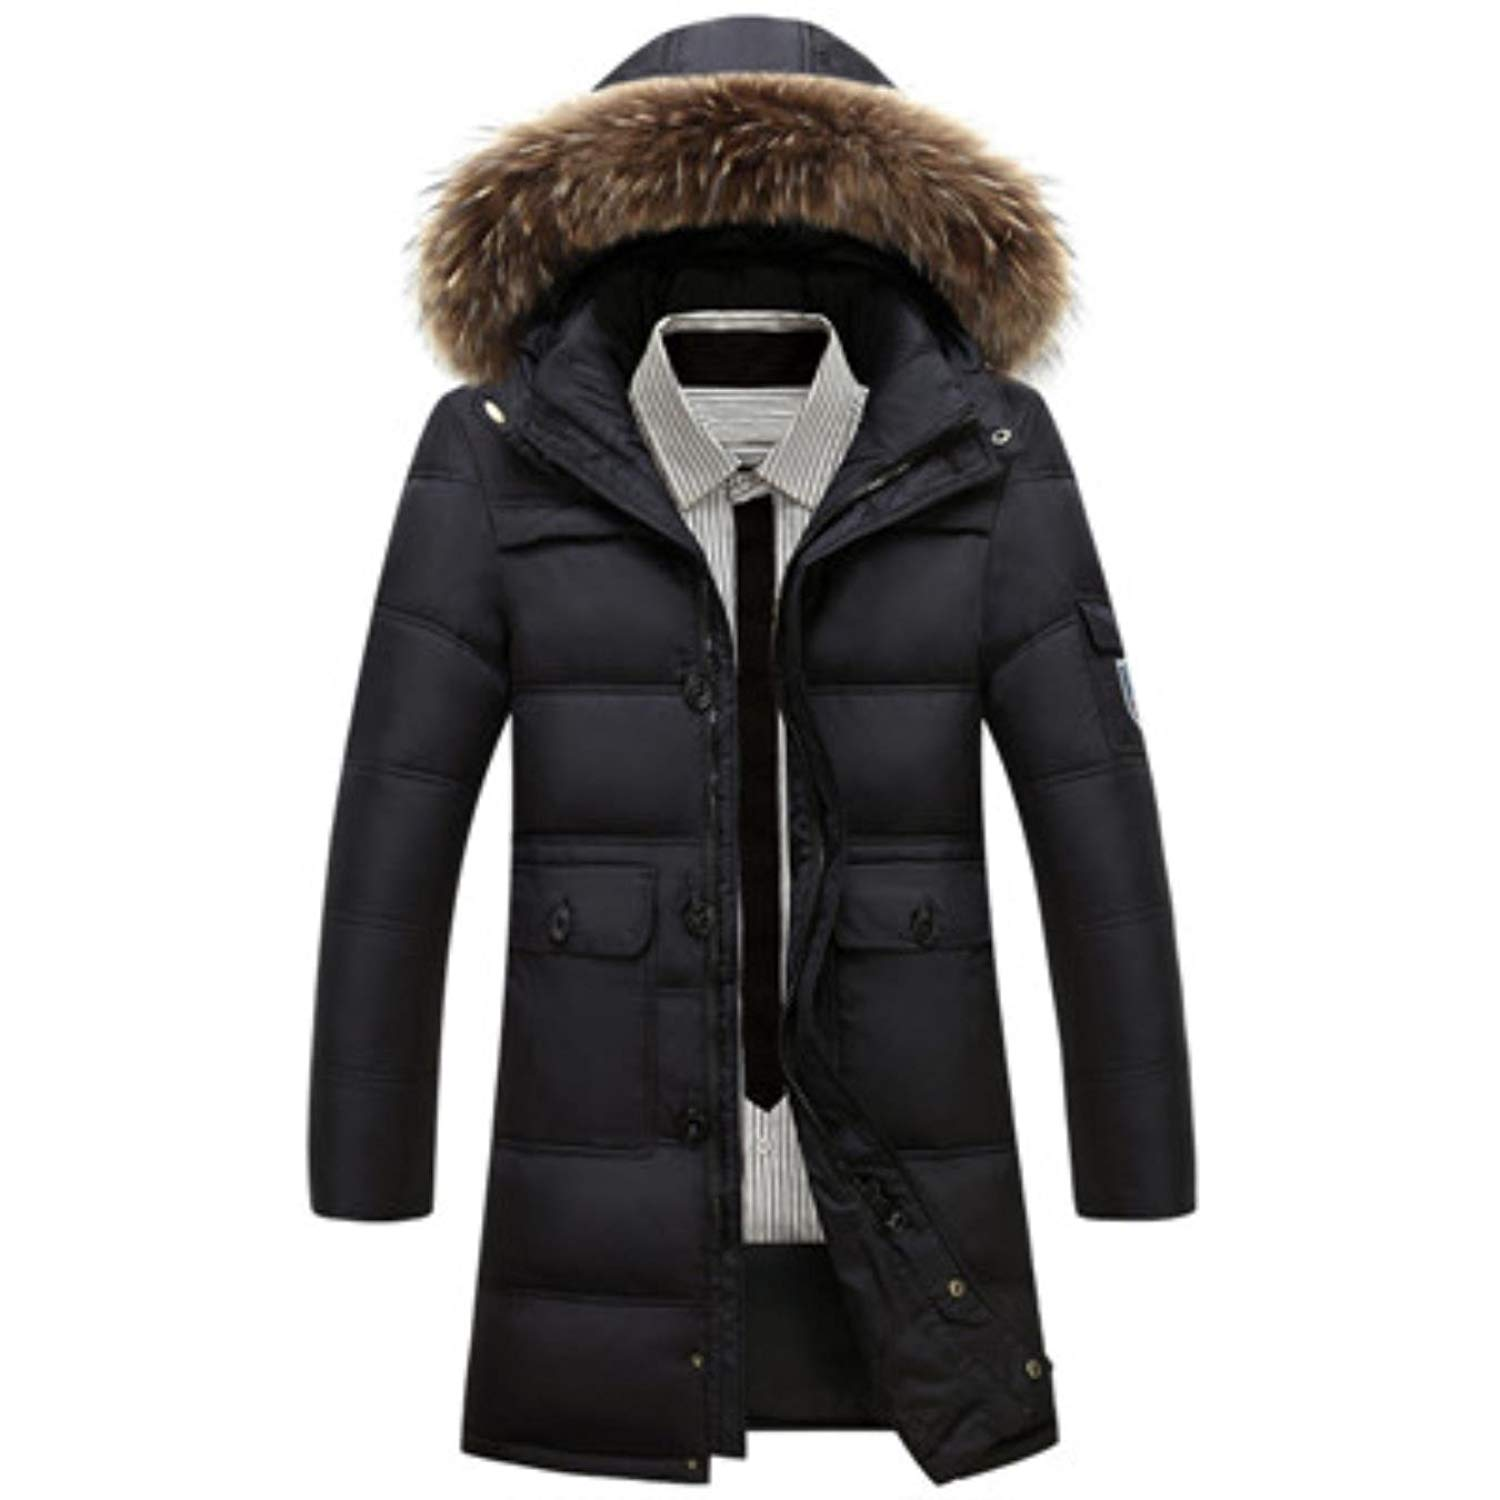 Cheap Semi Casual Jackets, find Semi Casual Jackets deals on